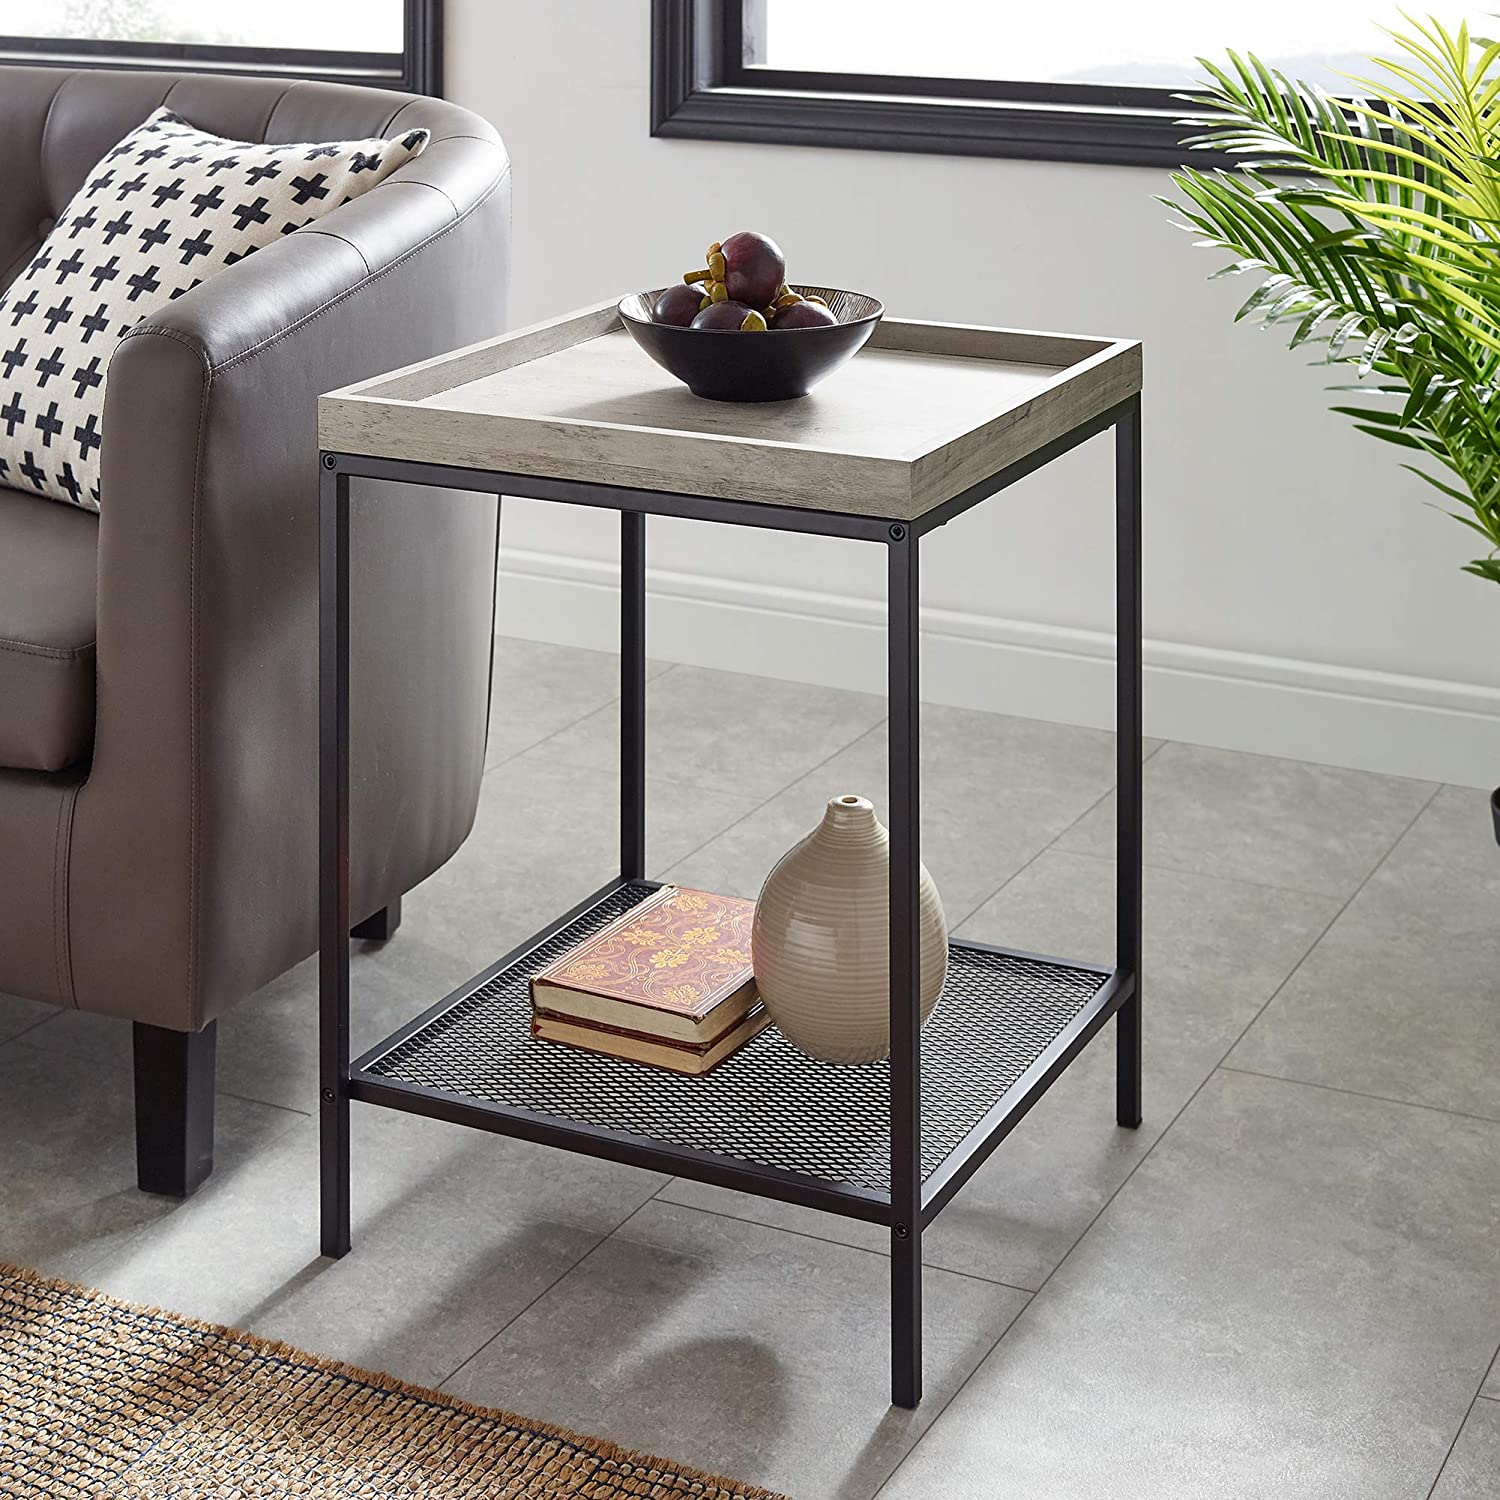 WE Furniture AZF18EMISTGW Industrial Farmhouse Square Side End Accent Table Living Room, 18 Inch, Grey